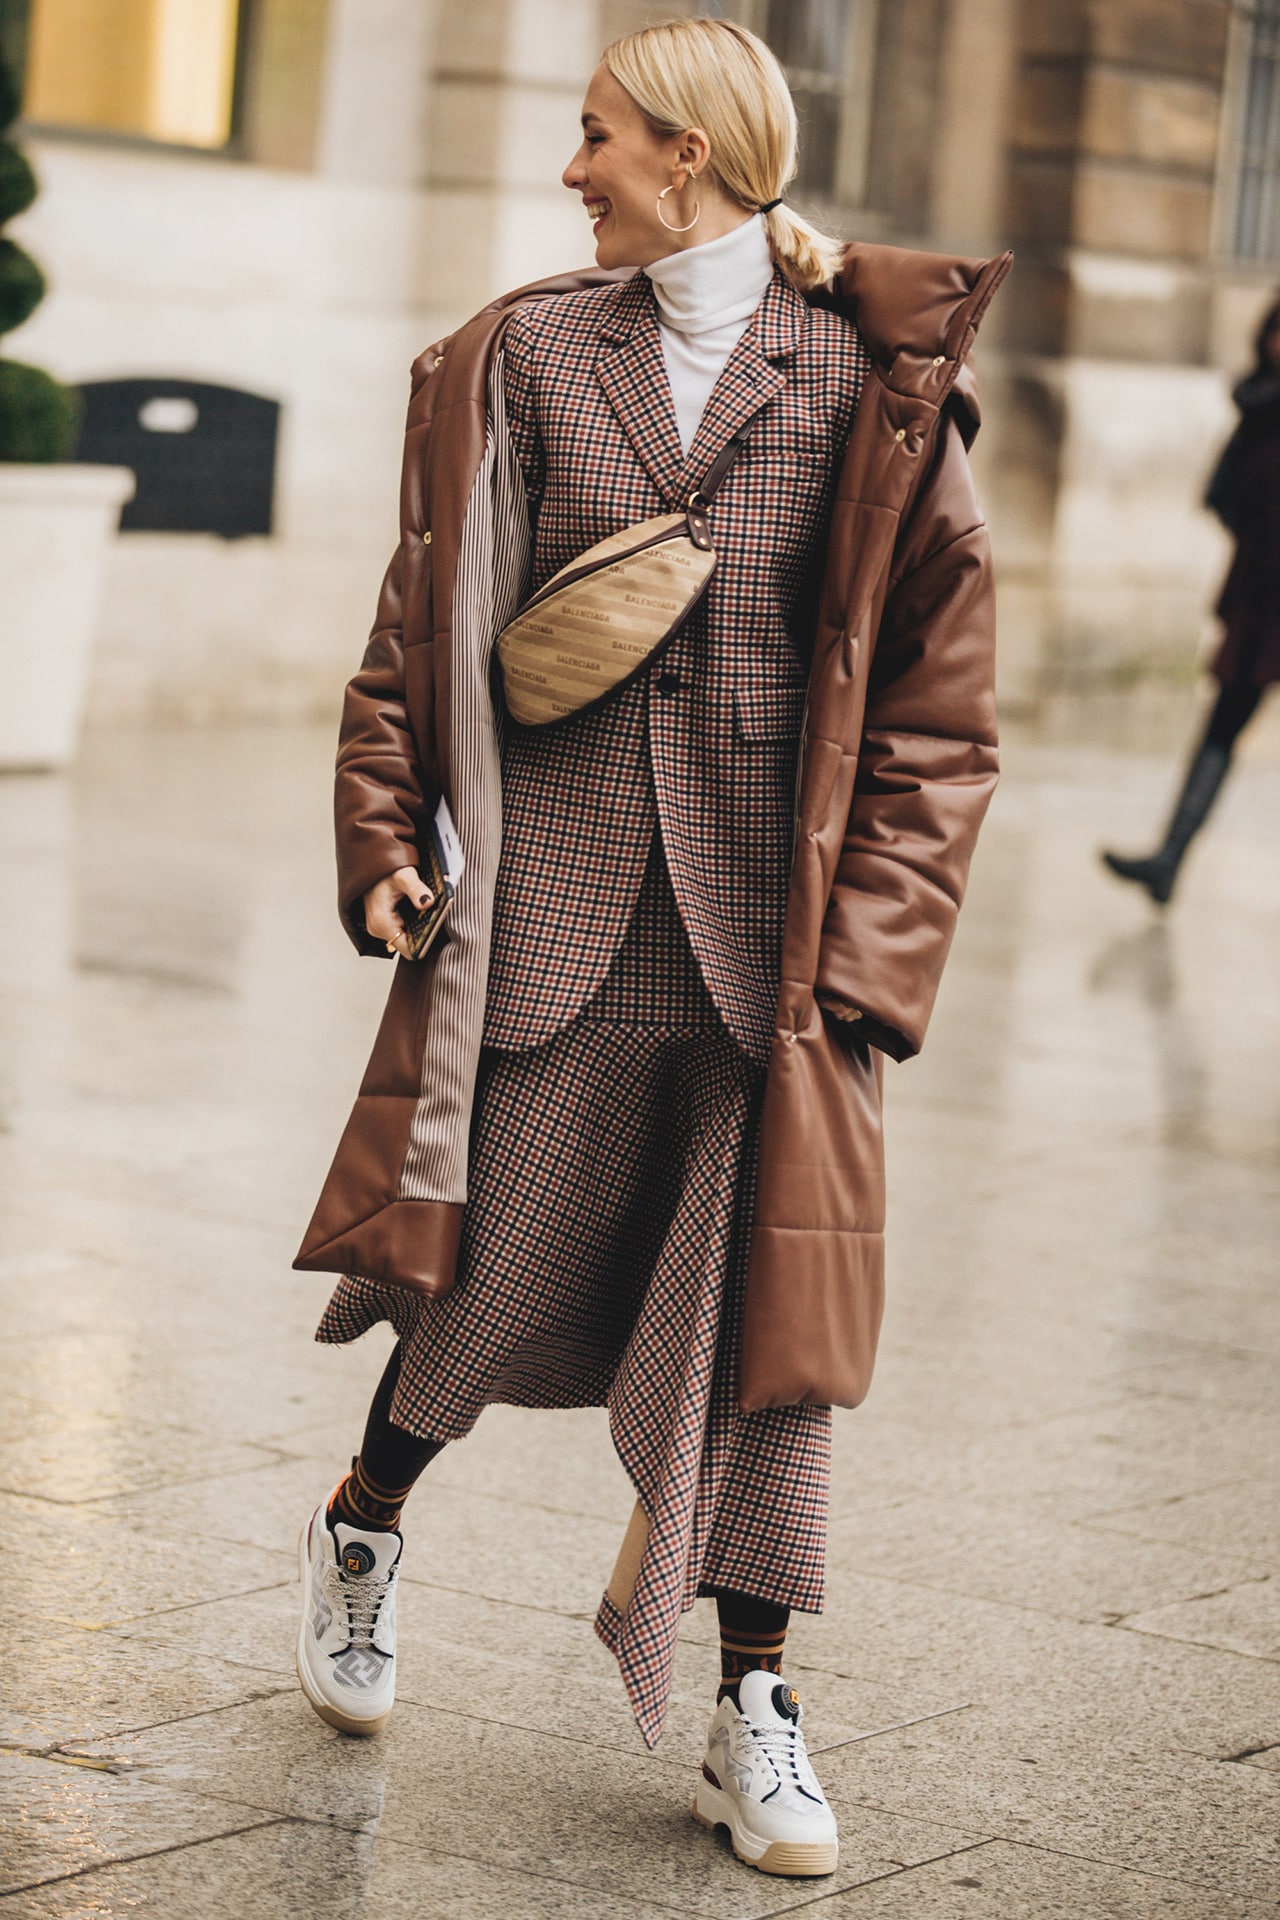 11 street style trends to inspire your look as the temperature drops